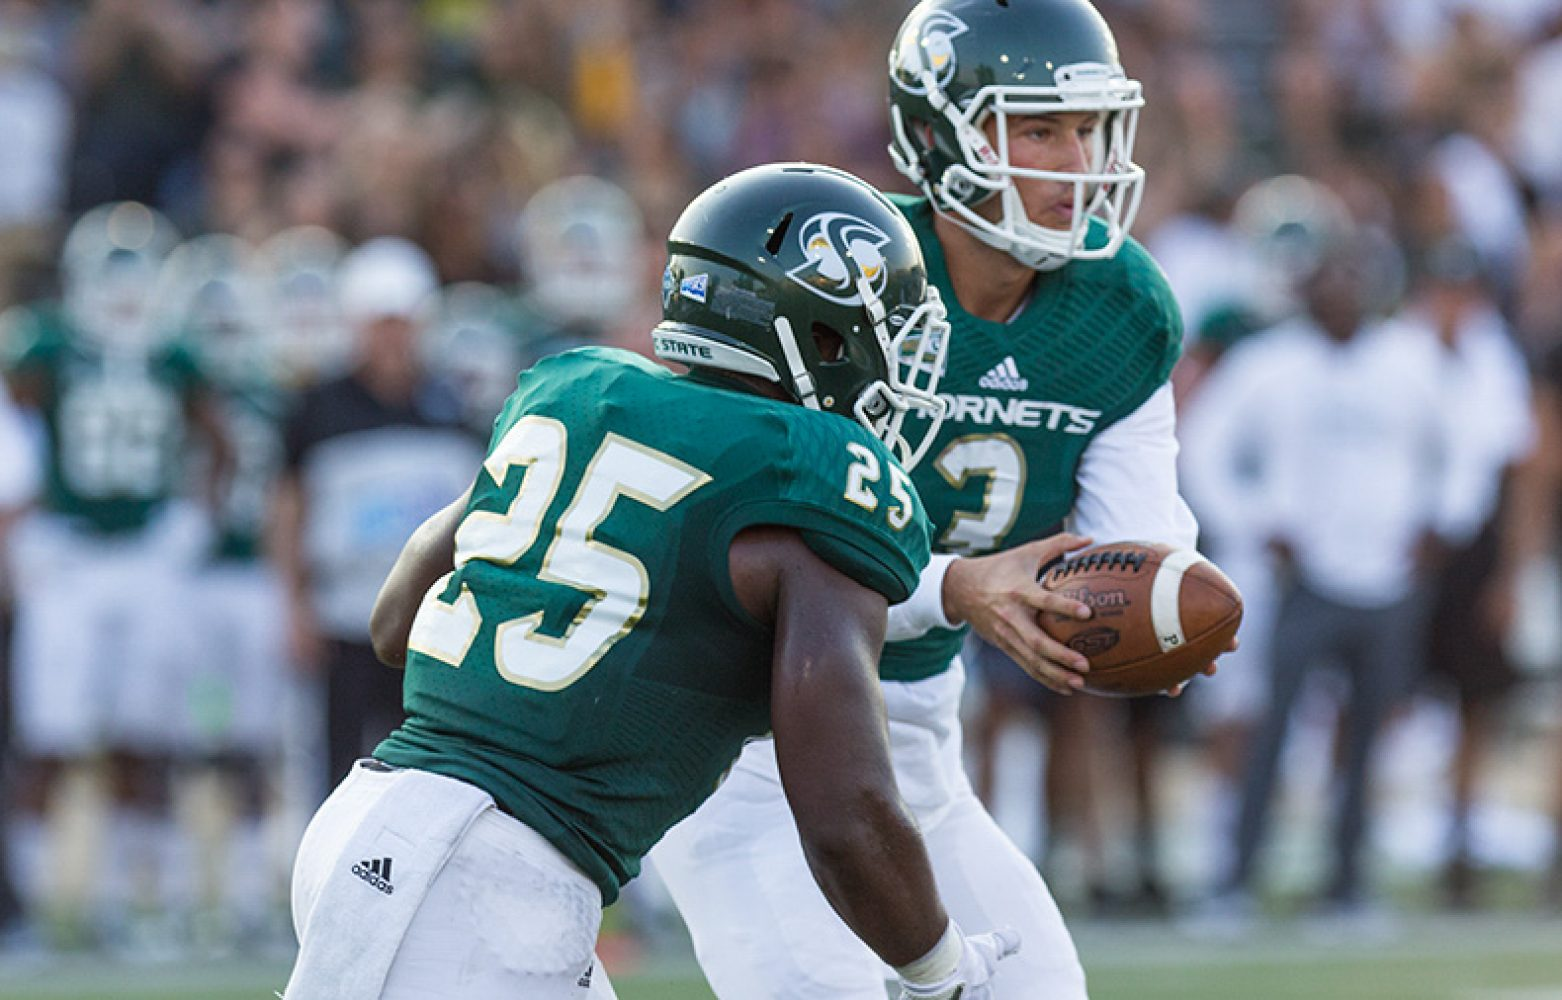 Sacramento State senior quarterback Kolney Cassel hands the ball to graduate transfer running back Joseph Ajeigbe against the University of Incarnate Word Saturday, Sept. 9 at Hornet Stadium. The Hornets came away with their first win of the season by the score of 56-22.